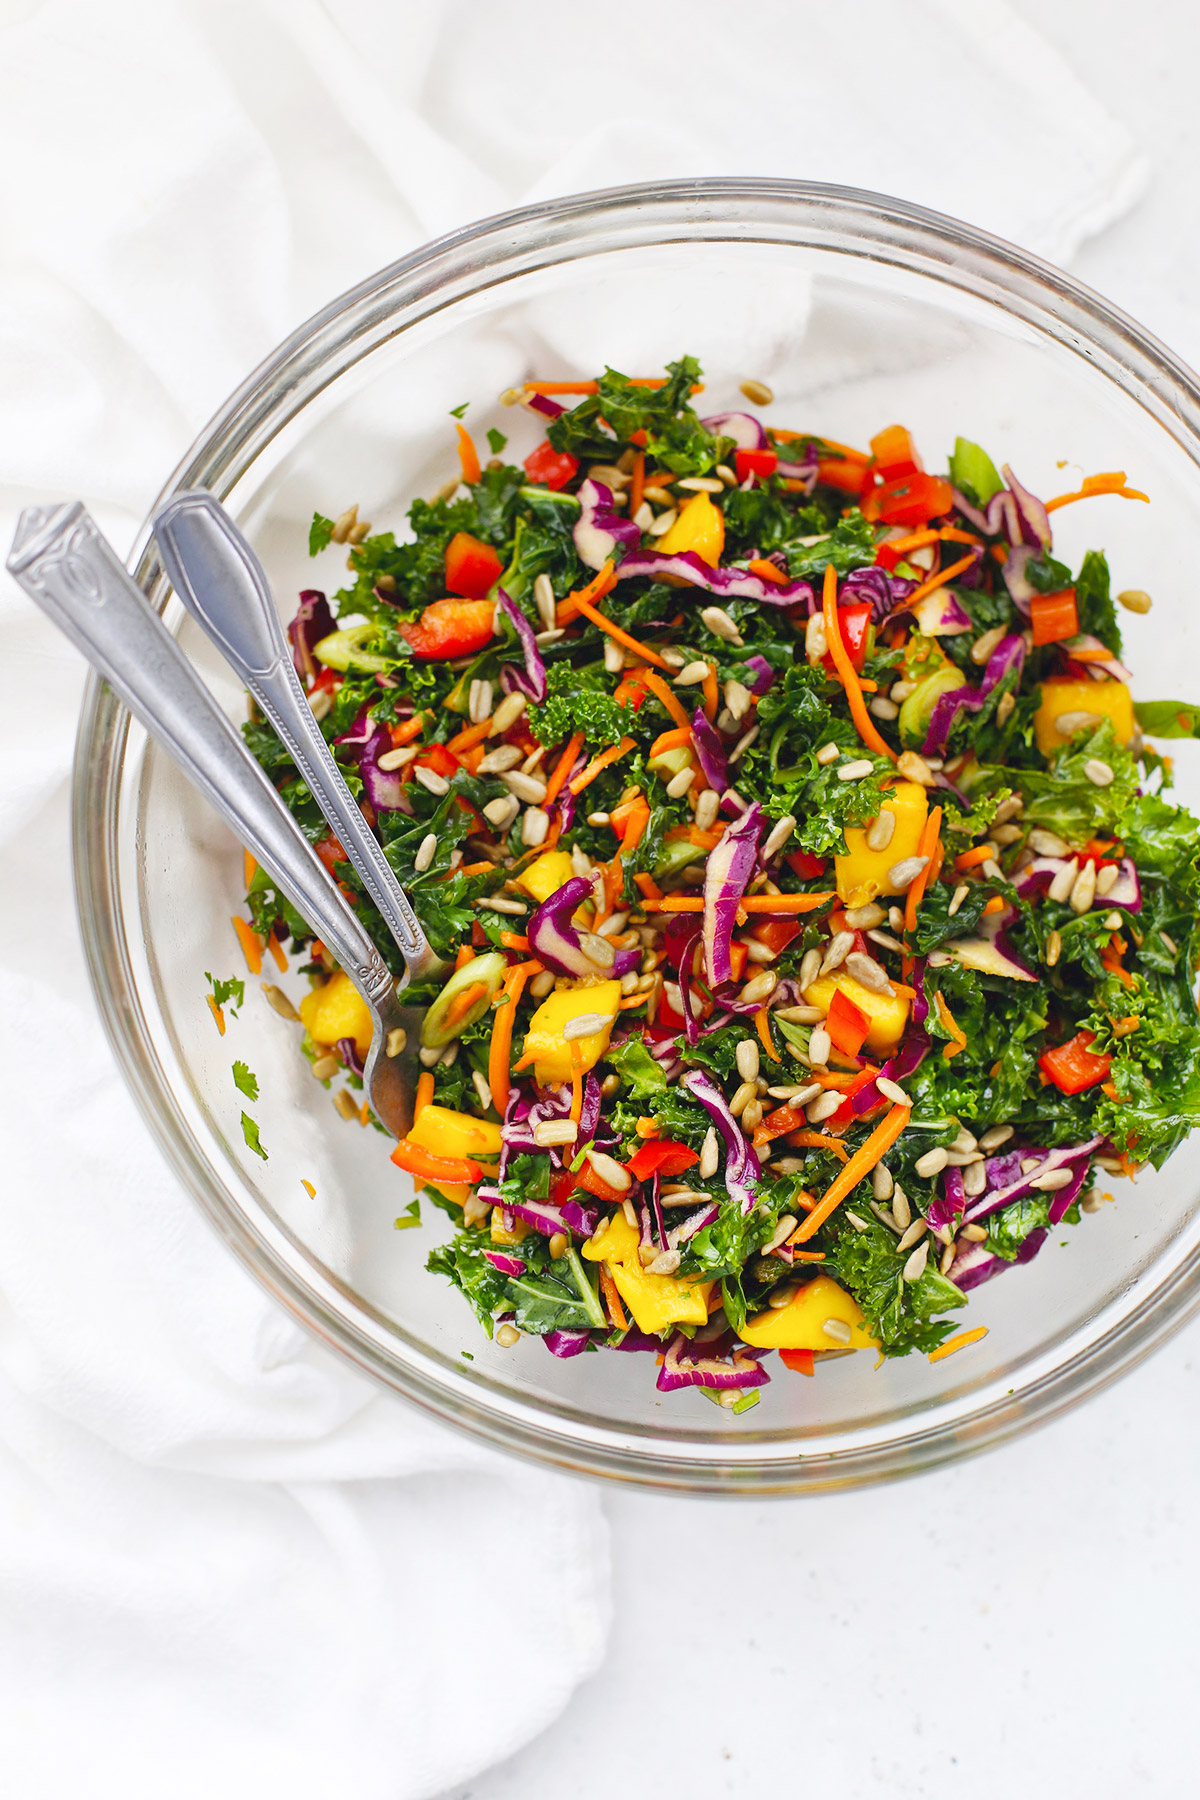 Asian Kale Crunch Salad in a glass salad bowl